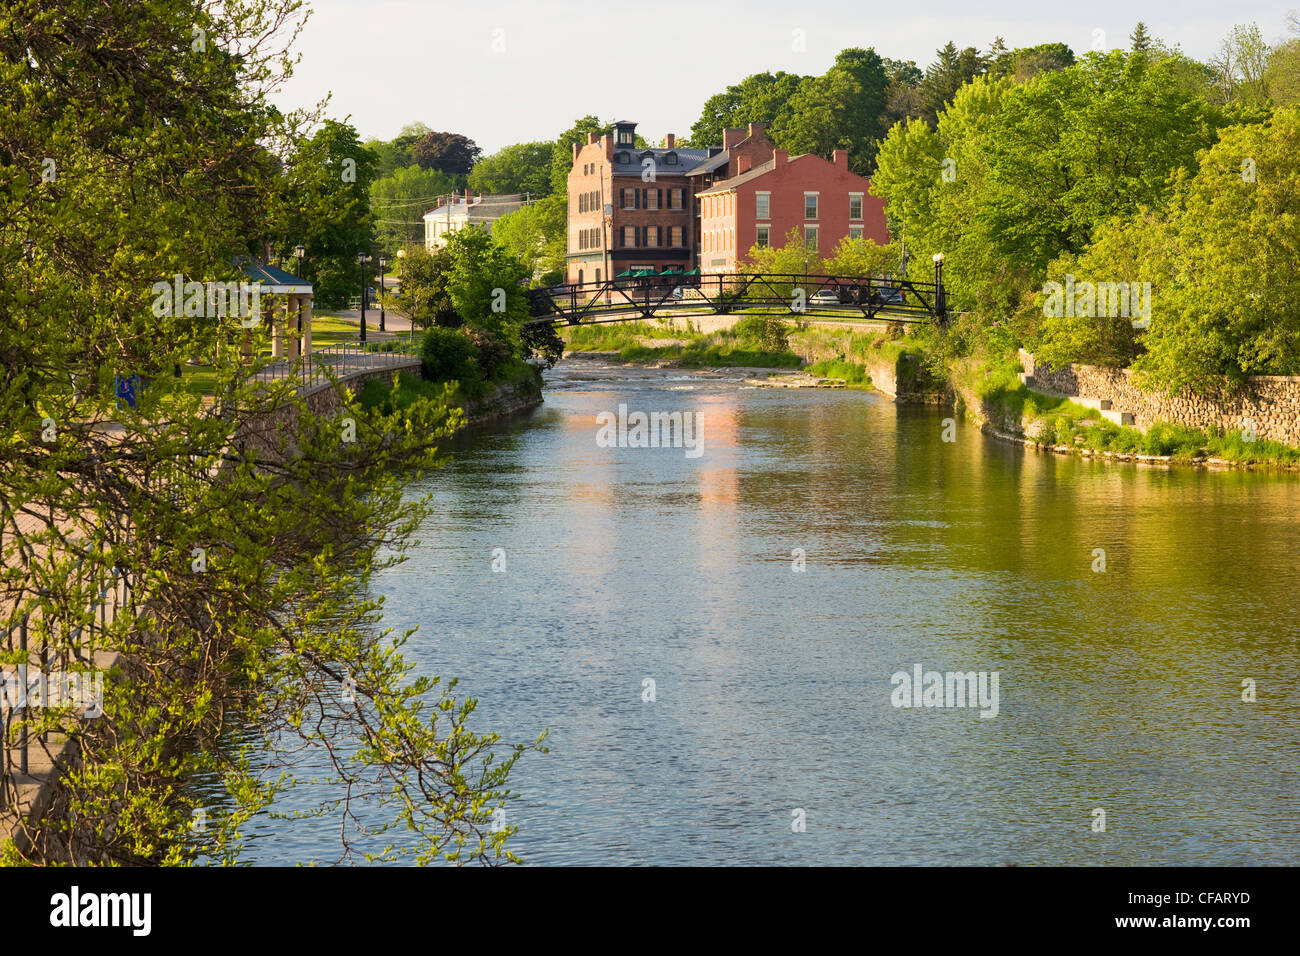 Rotary Park in Port Hope, Ontario, Canada. - Stock Image